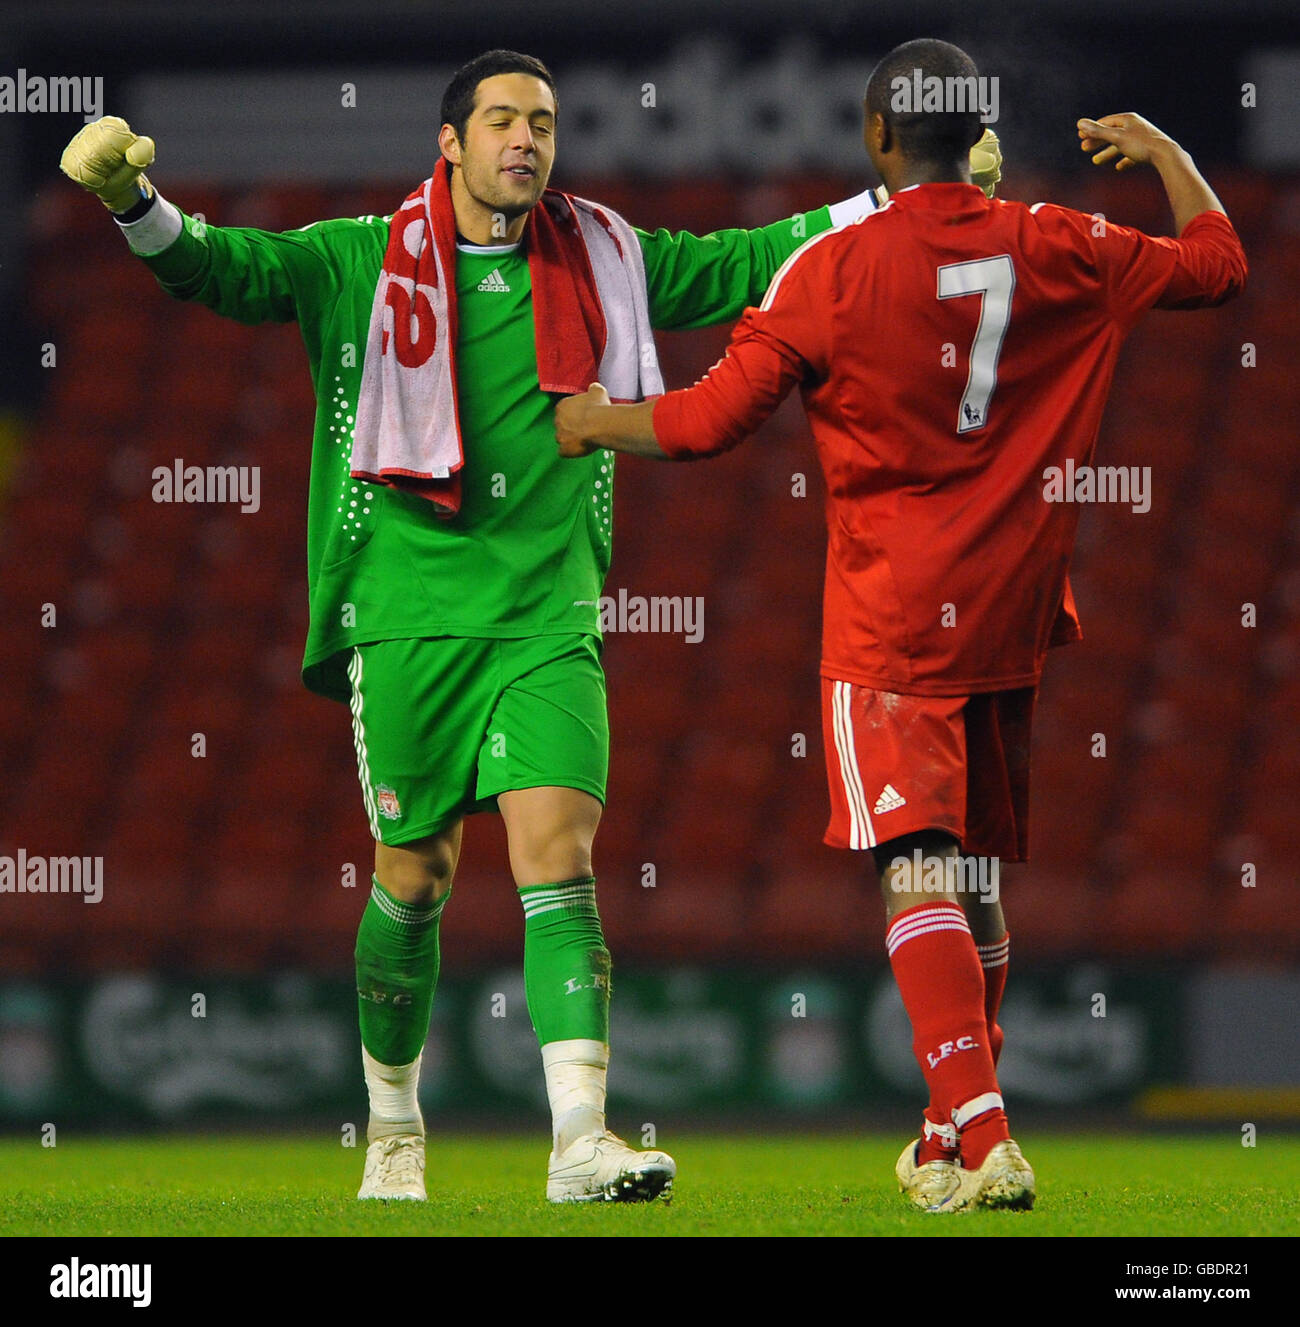 Soccer - FA Youth Cup - Fitfh Round - Liverpool v Chelsea - Anfield - Stock Image